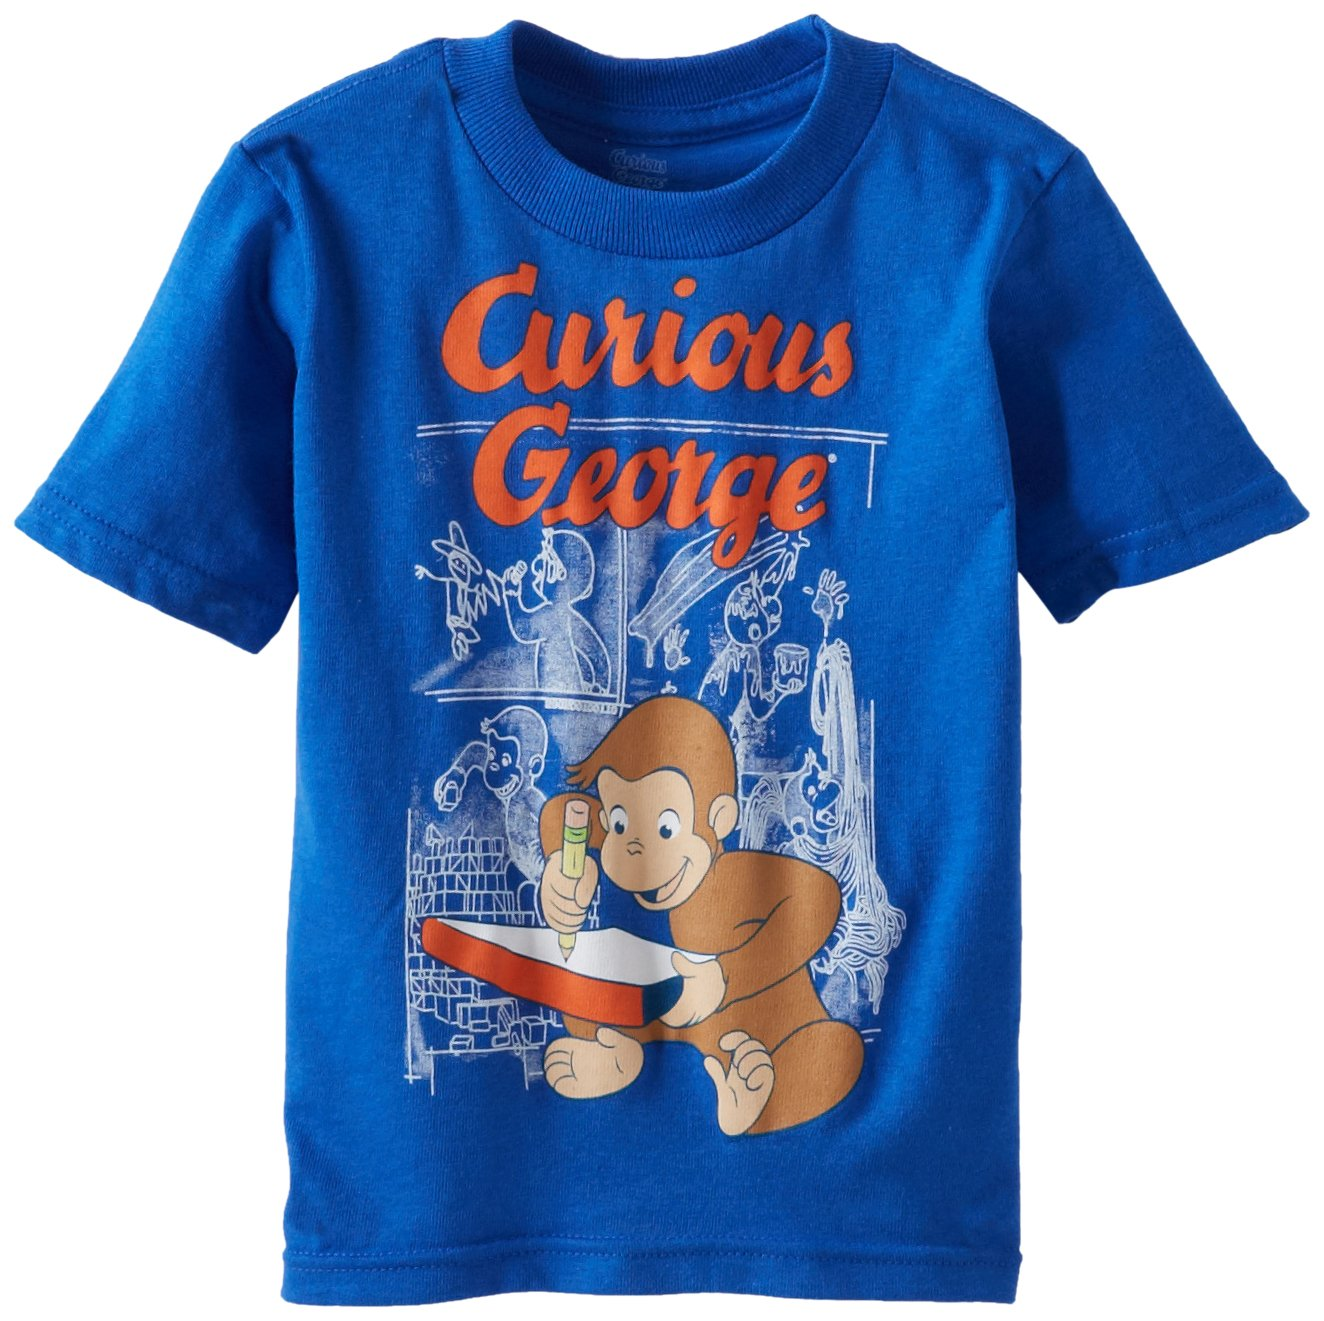 Curious George Boys' Graphic Short Sleeve Tee Freeze Children' s Apparel JRSB206-02T